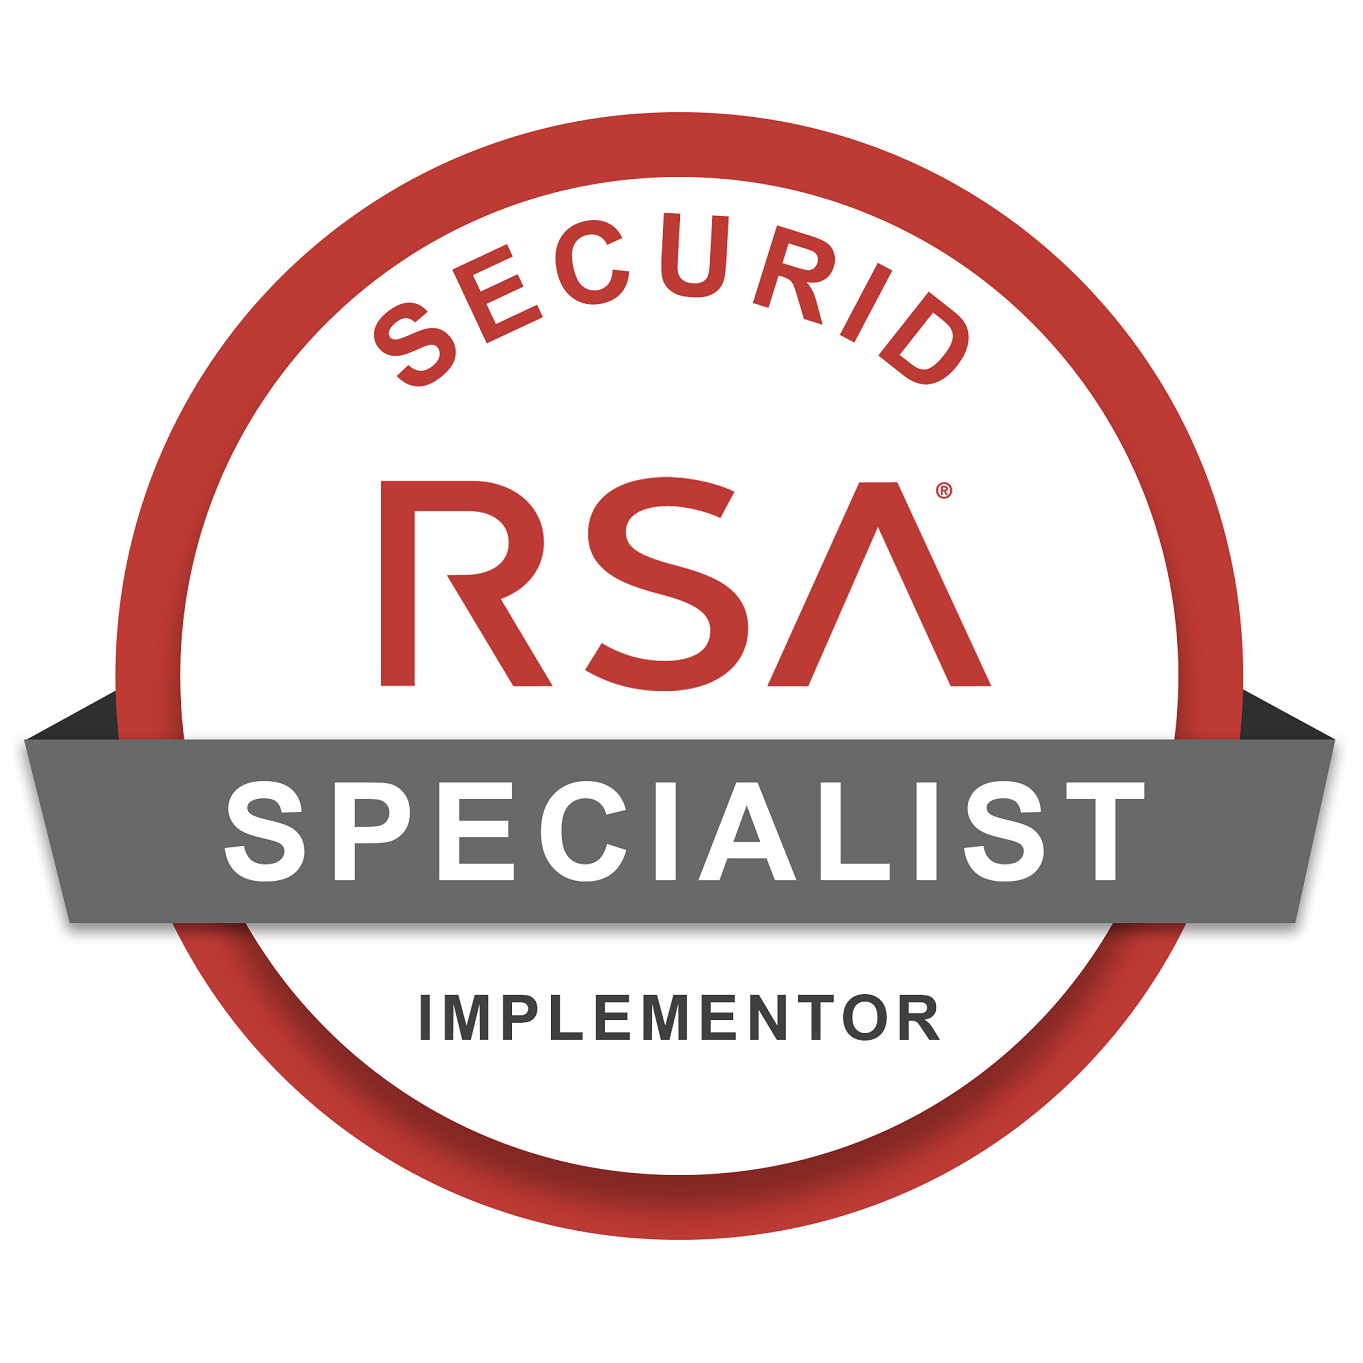 SecurID Access Certified Specialist - Implementor